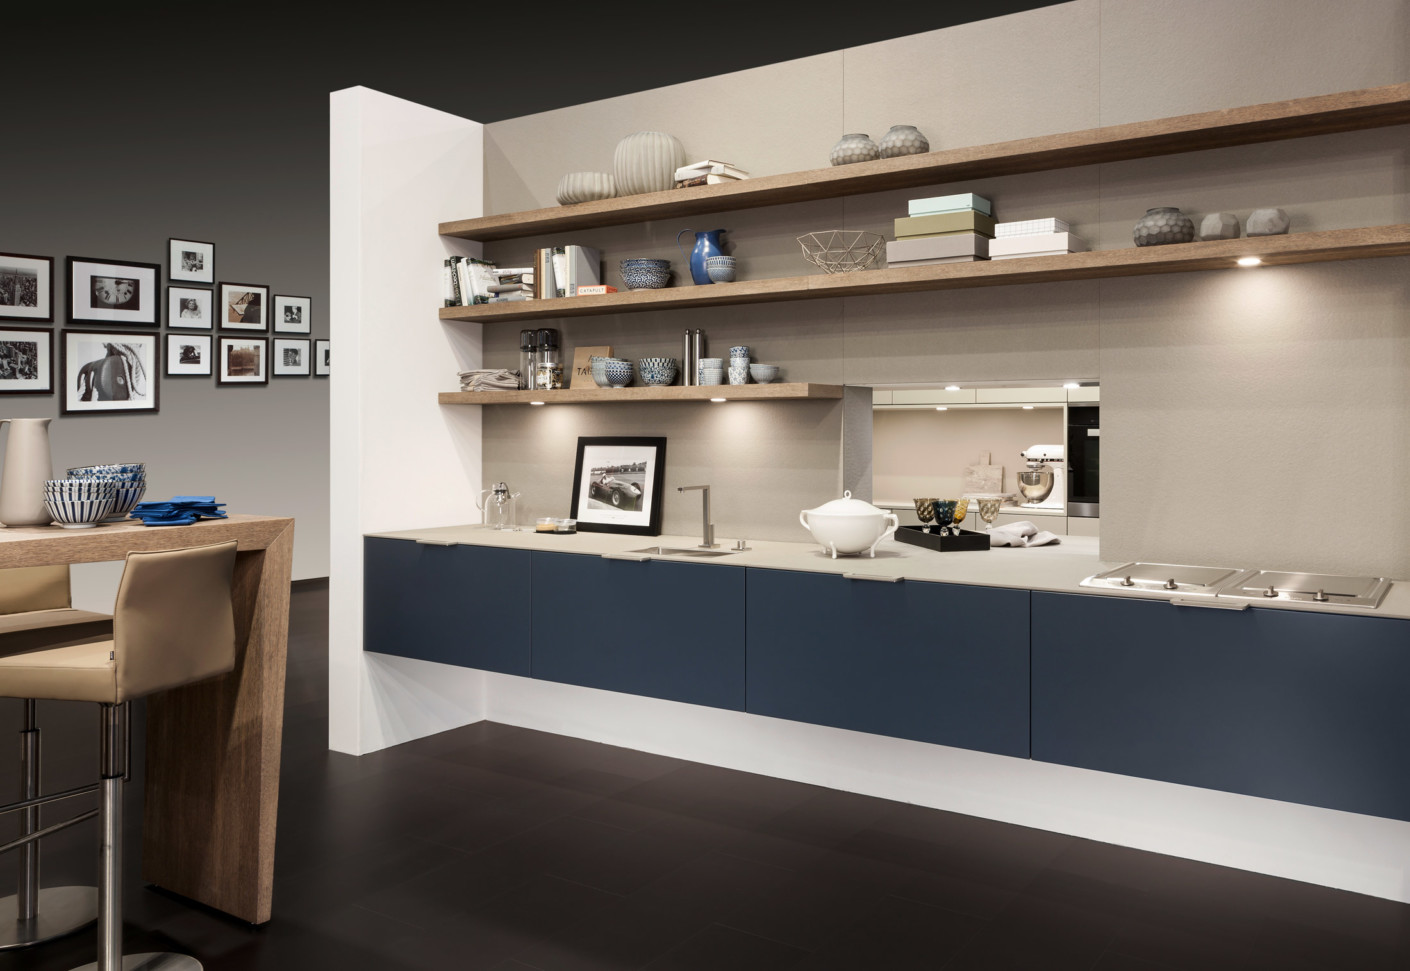 Livingkitchen Internationales Urbanes K Chendesign Von Warendorf Stylepark